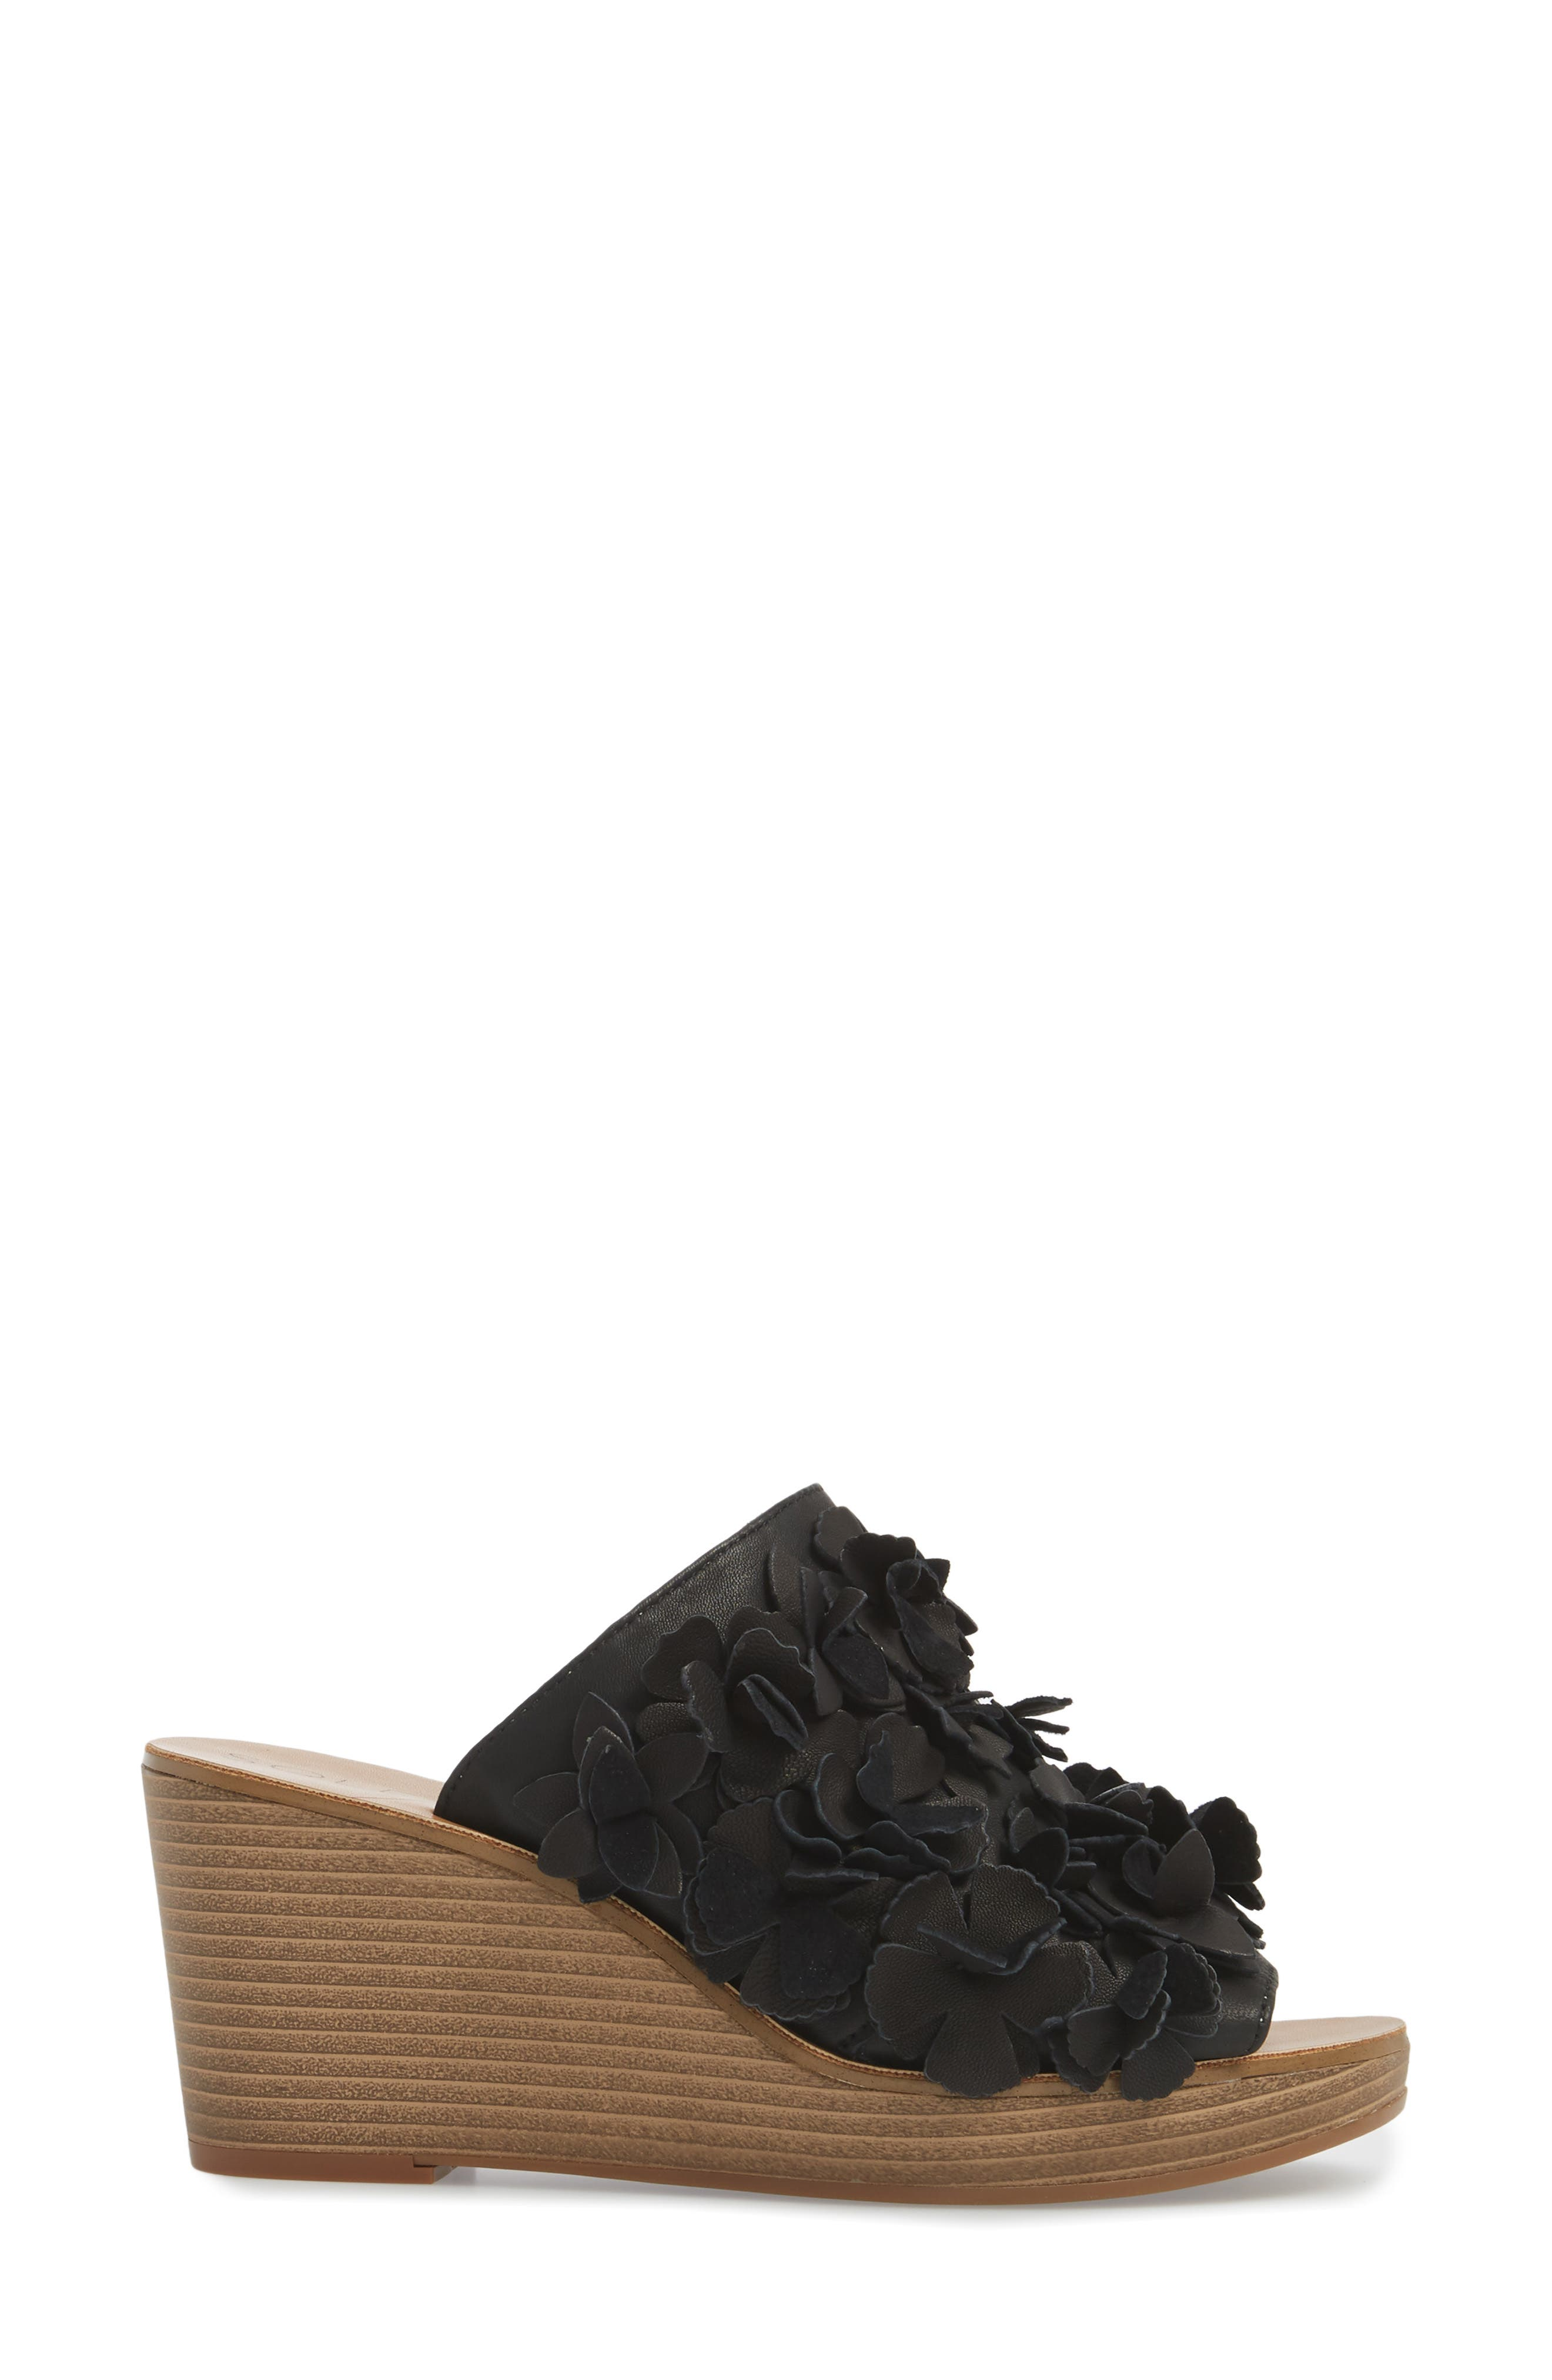 Poppie Wedge Sandal,                             Alternate thumbnail 3, color,                             BLACK